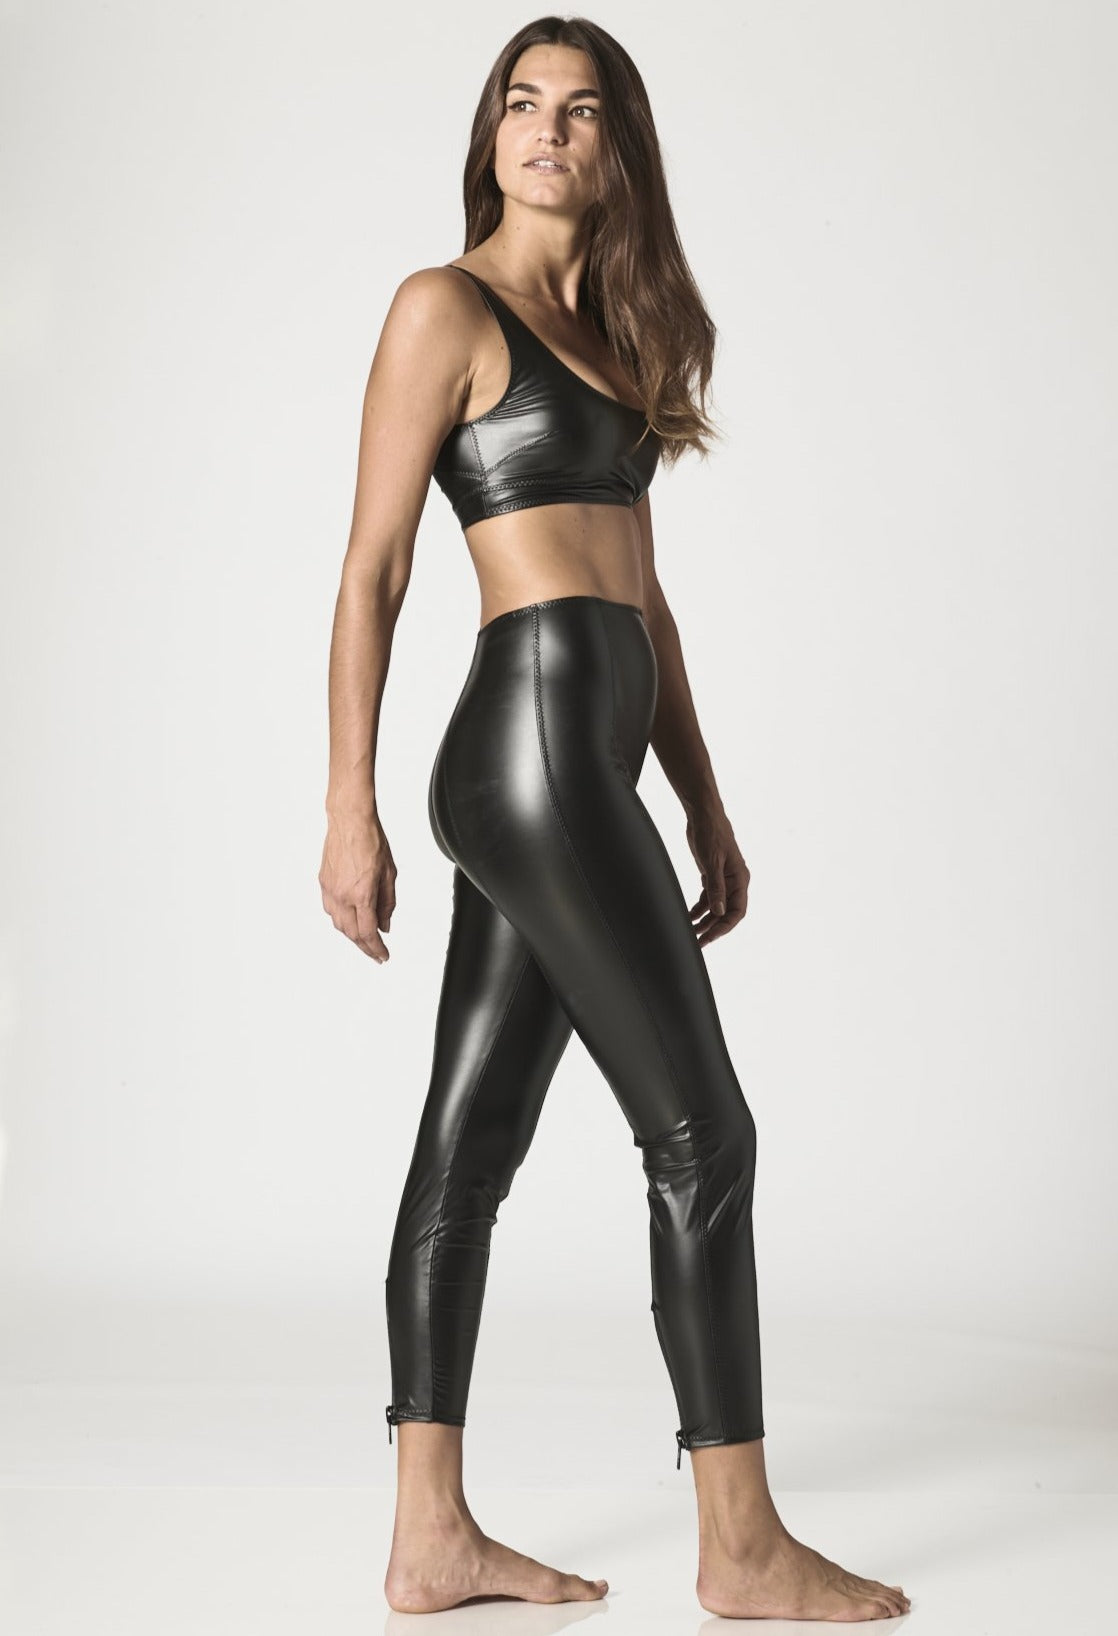 KARLIE BLACK VEGAN LEATHER LEGGING